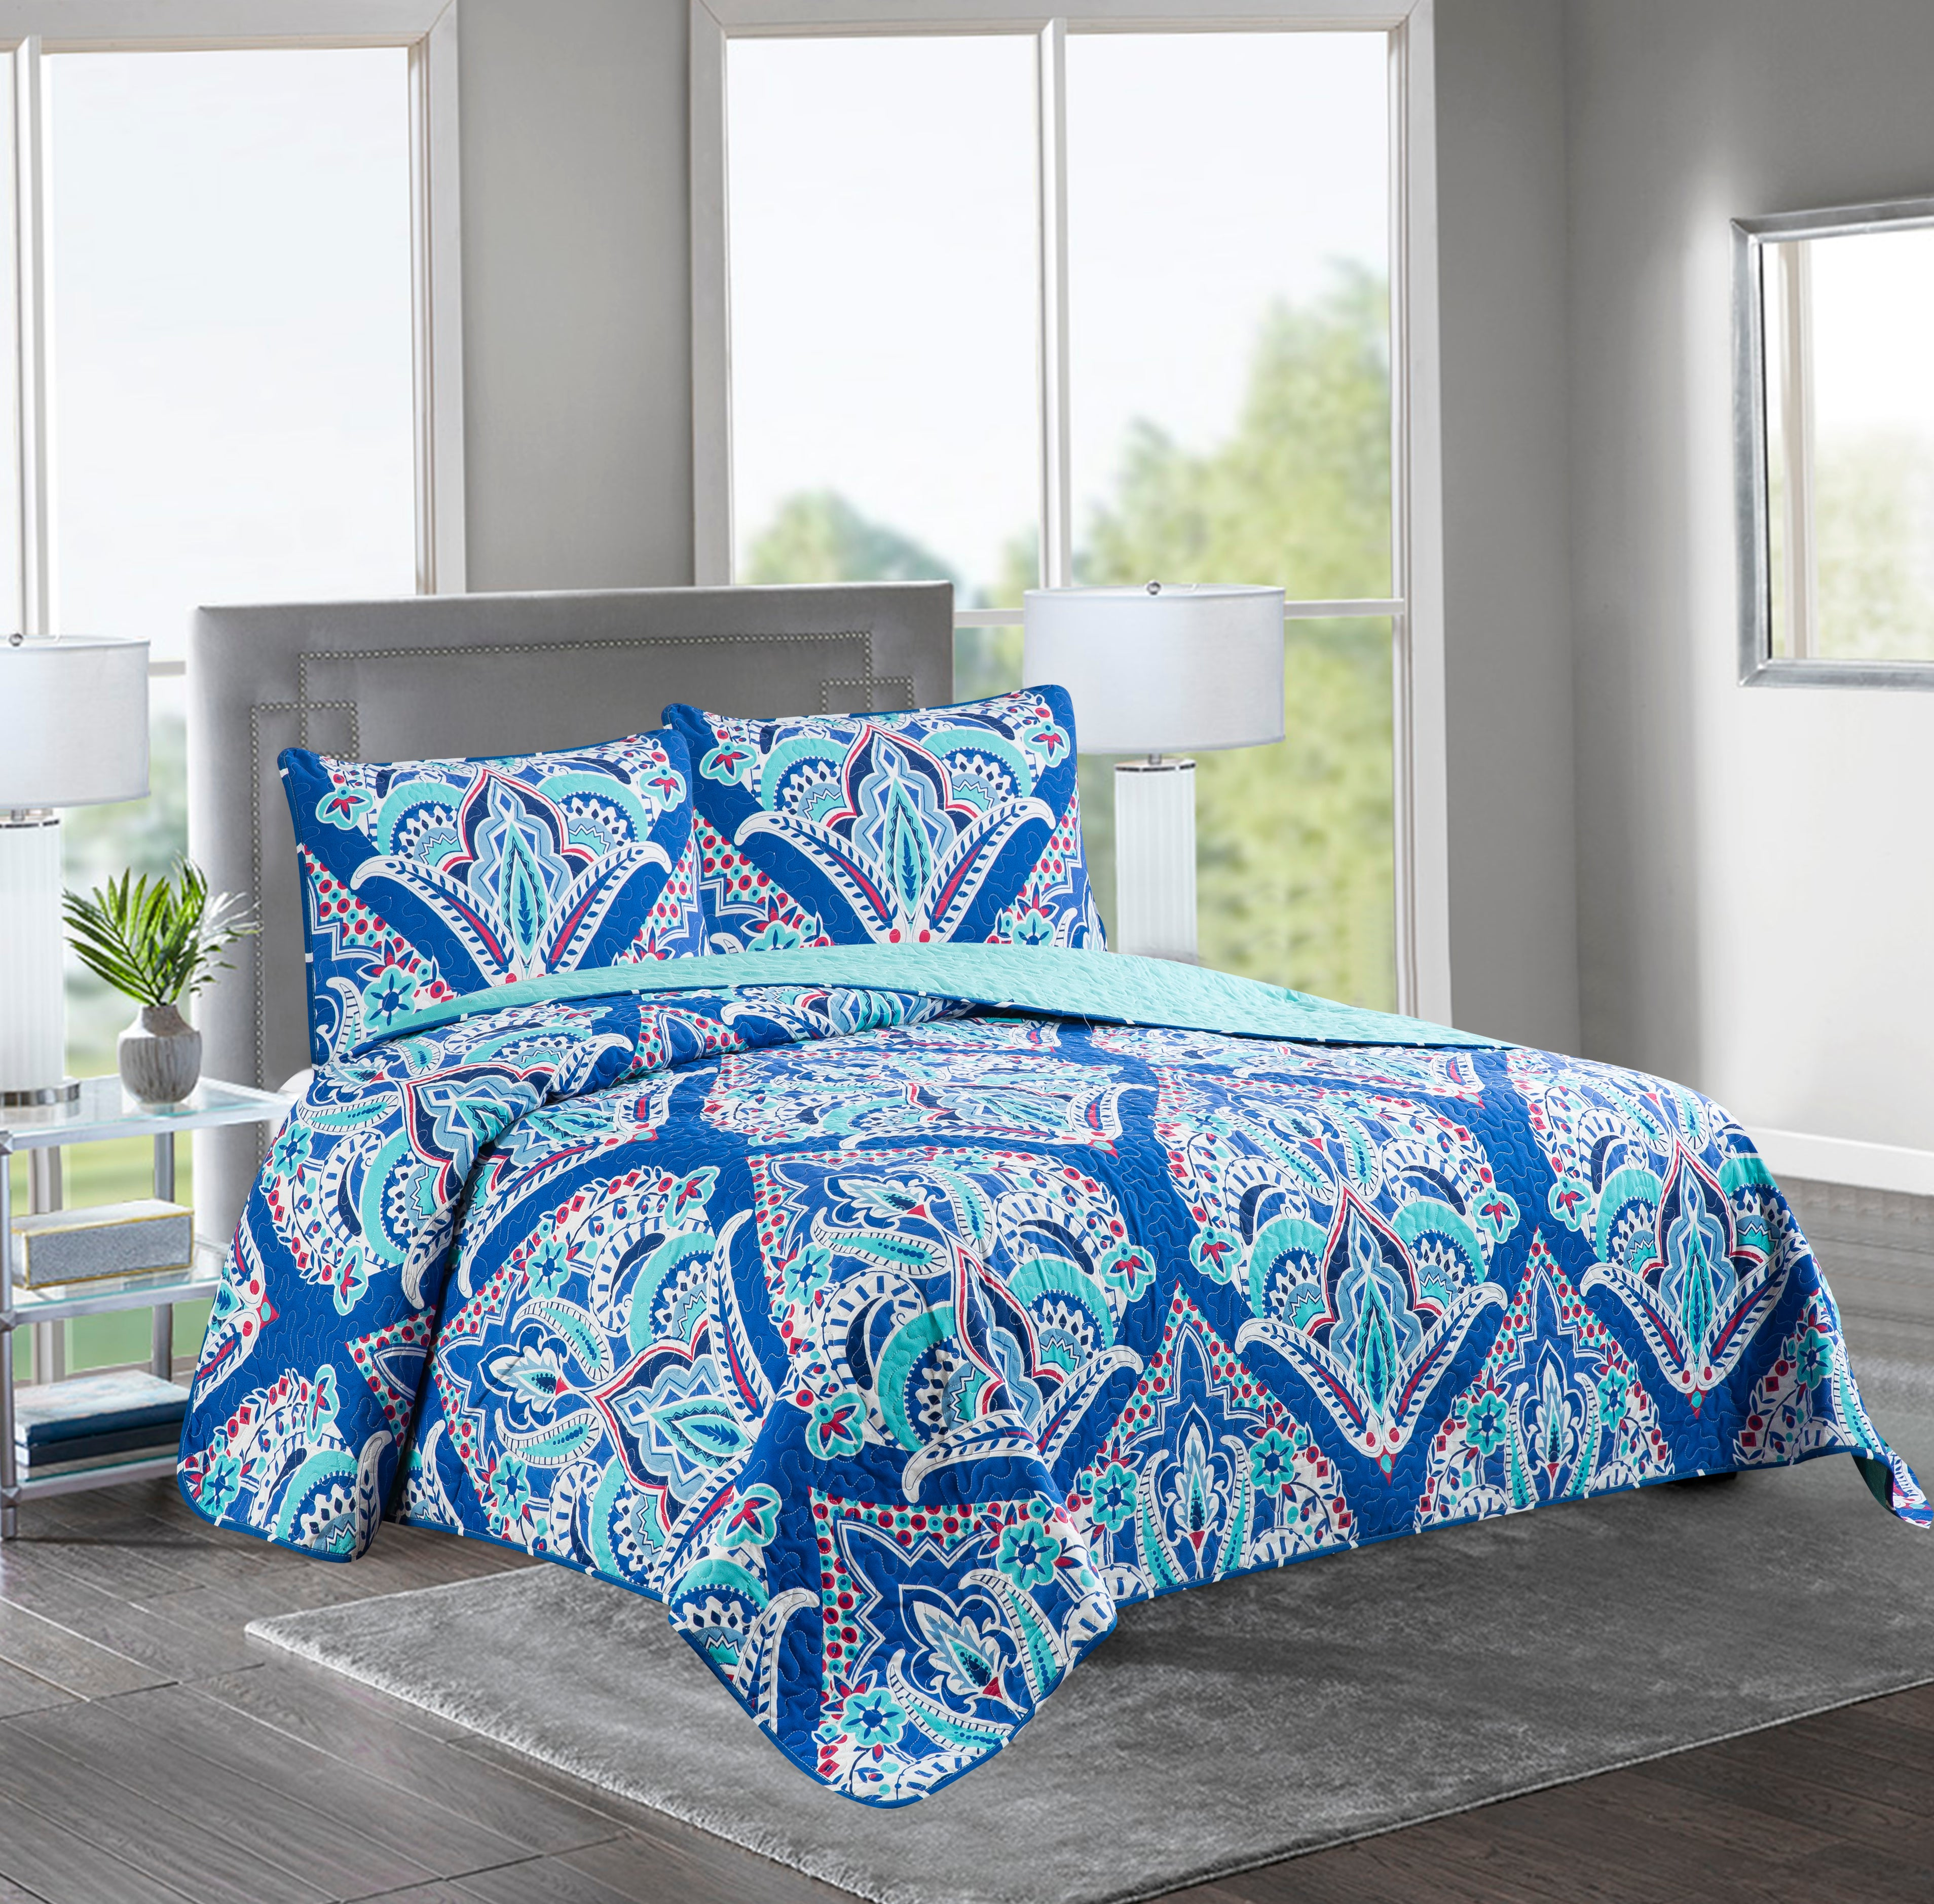 Marian - 3 Piece Reversible Quilt Set -BLUE PATTERN - Glory Home Design